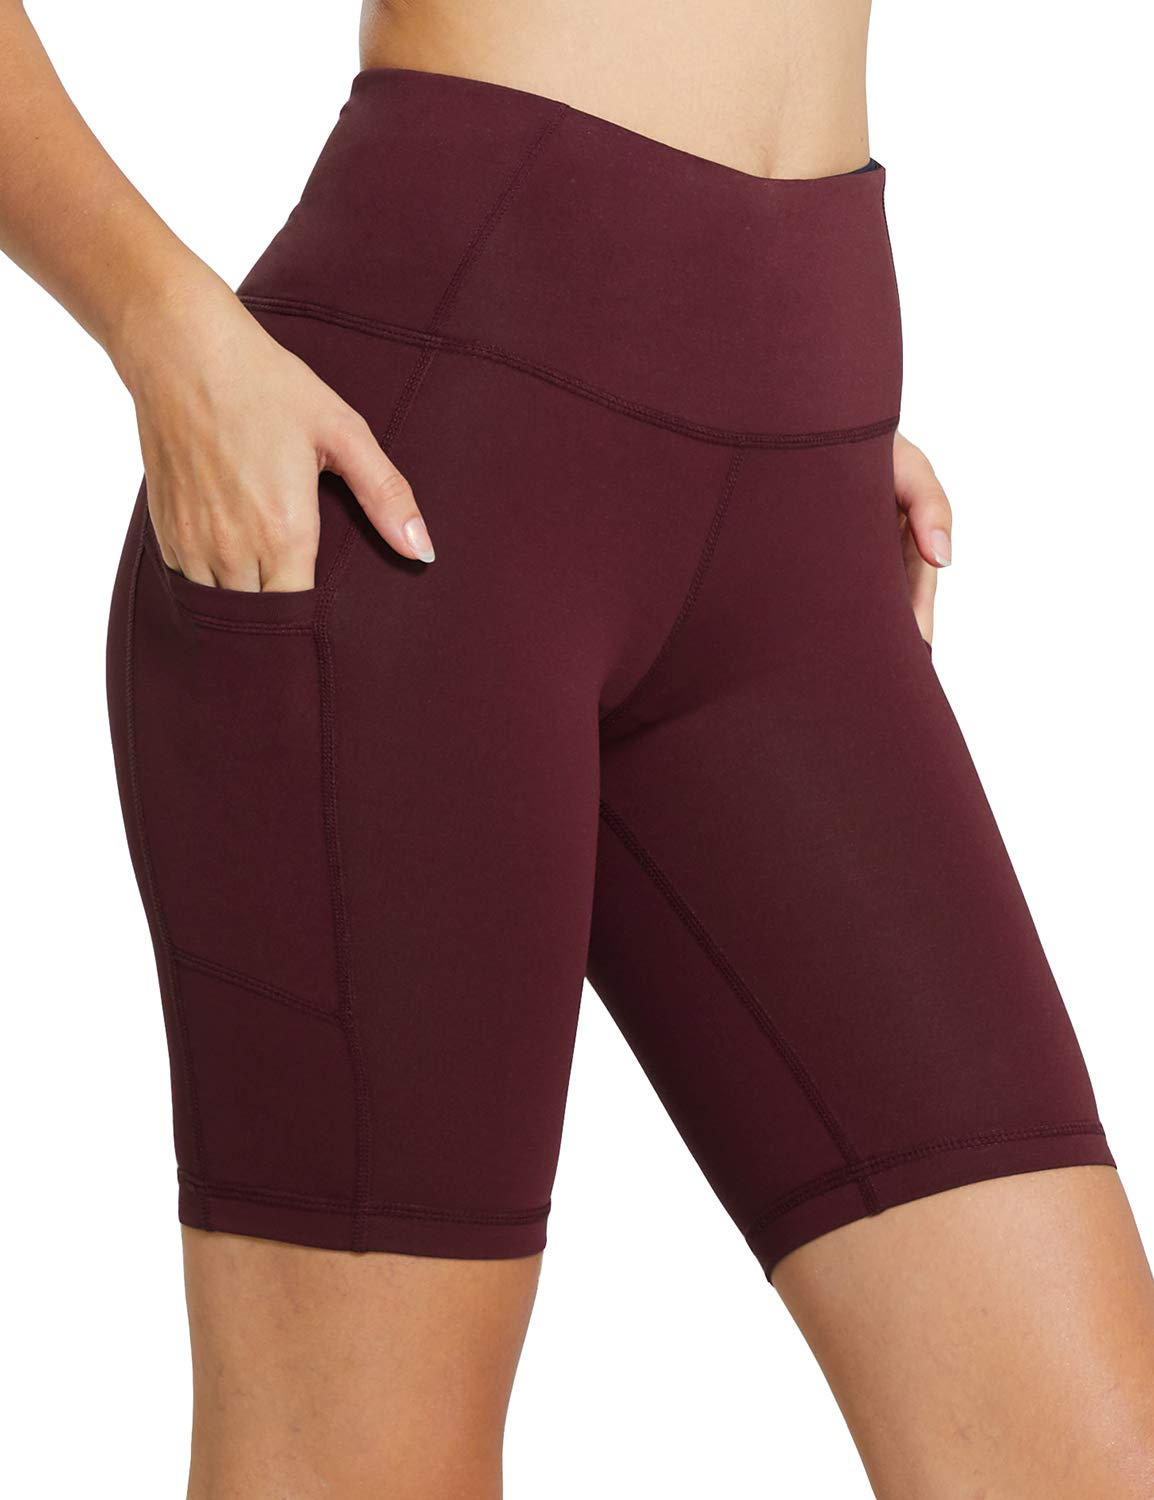 BALEAF Women's 8'' High Waist Tummy Control Workout Yoga Shorts Side Pockets Ruby Wine Size XXL by BALEAF